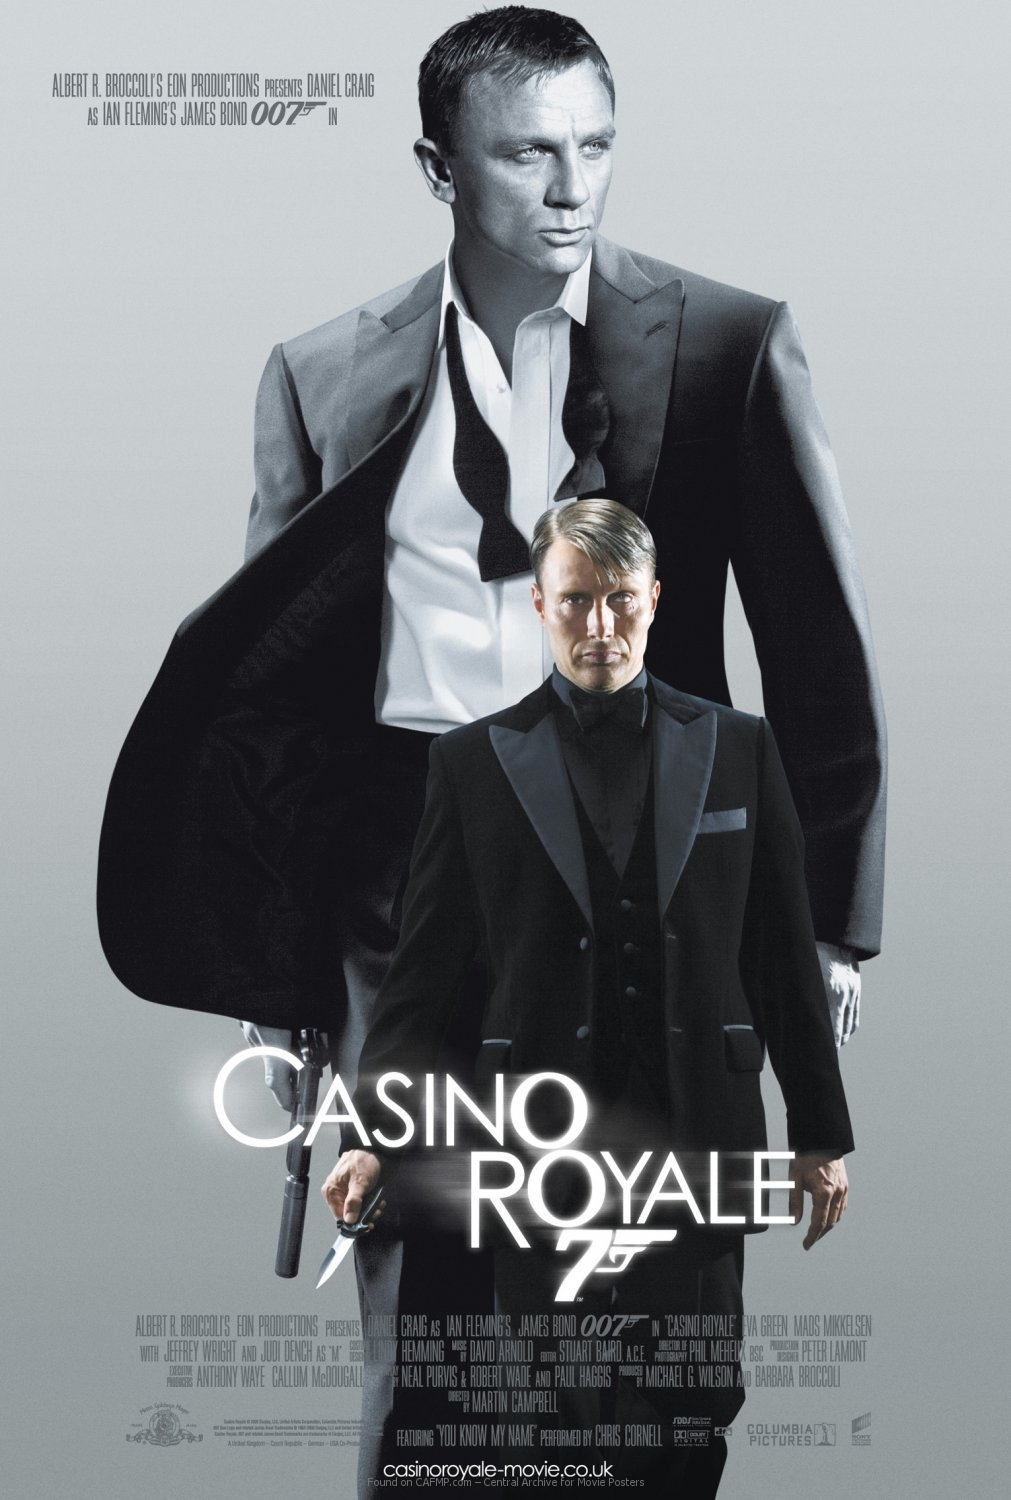 Amusing Mads mikkelsen casino royale think